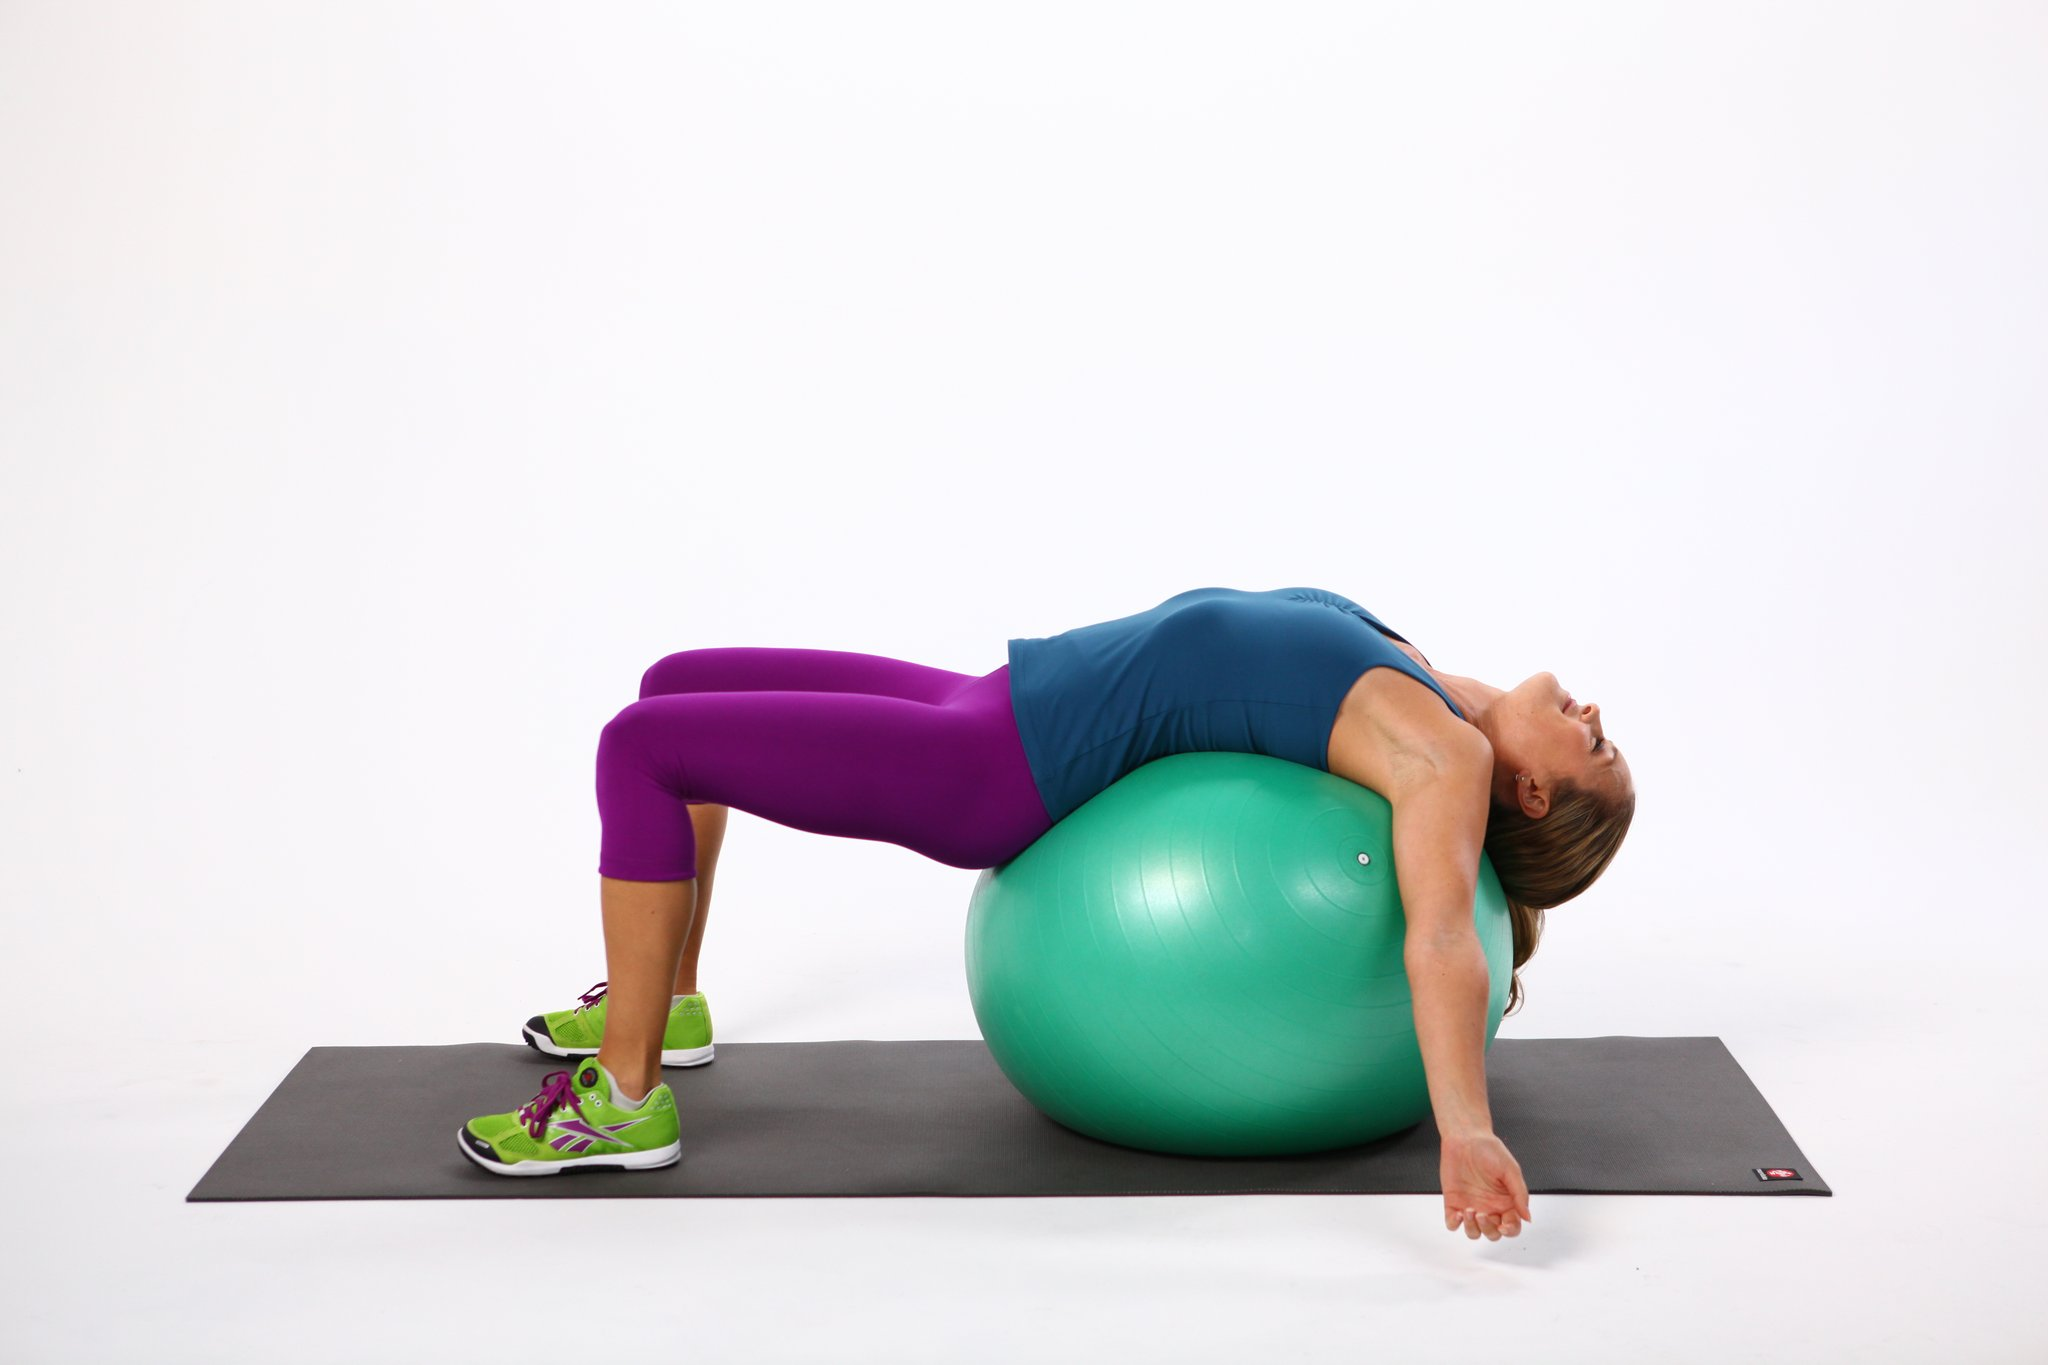 Pectoral chest stretch on the stability ball